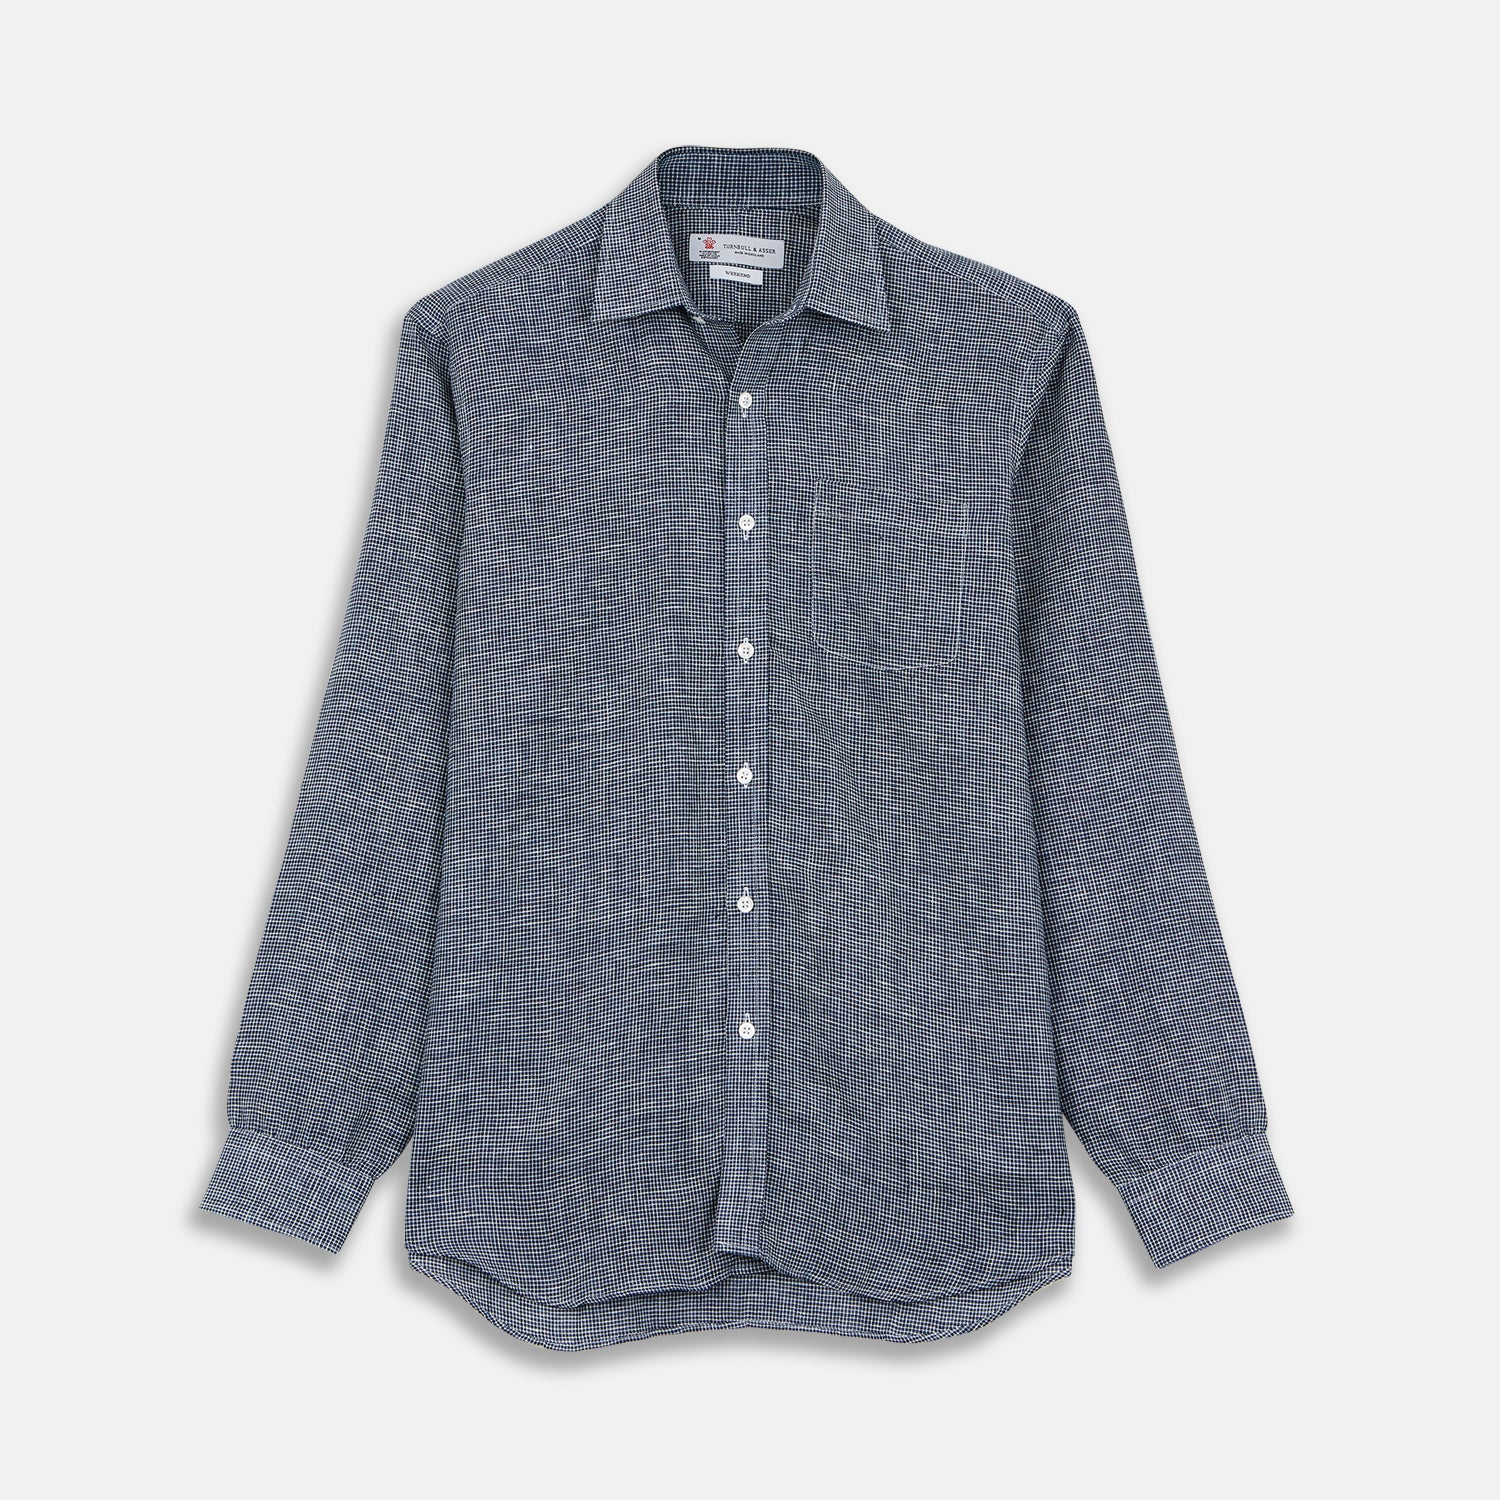 Weekend Fit Navy Check Linen Shirt with Derby Collar and 1-Button Cuffs